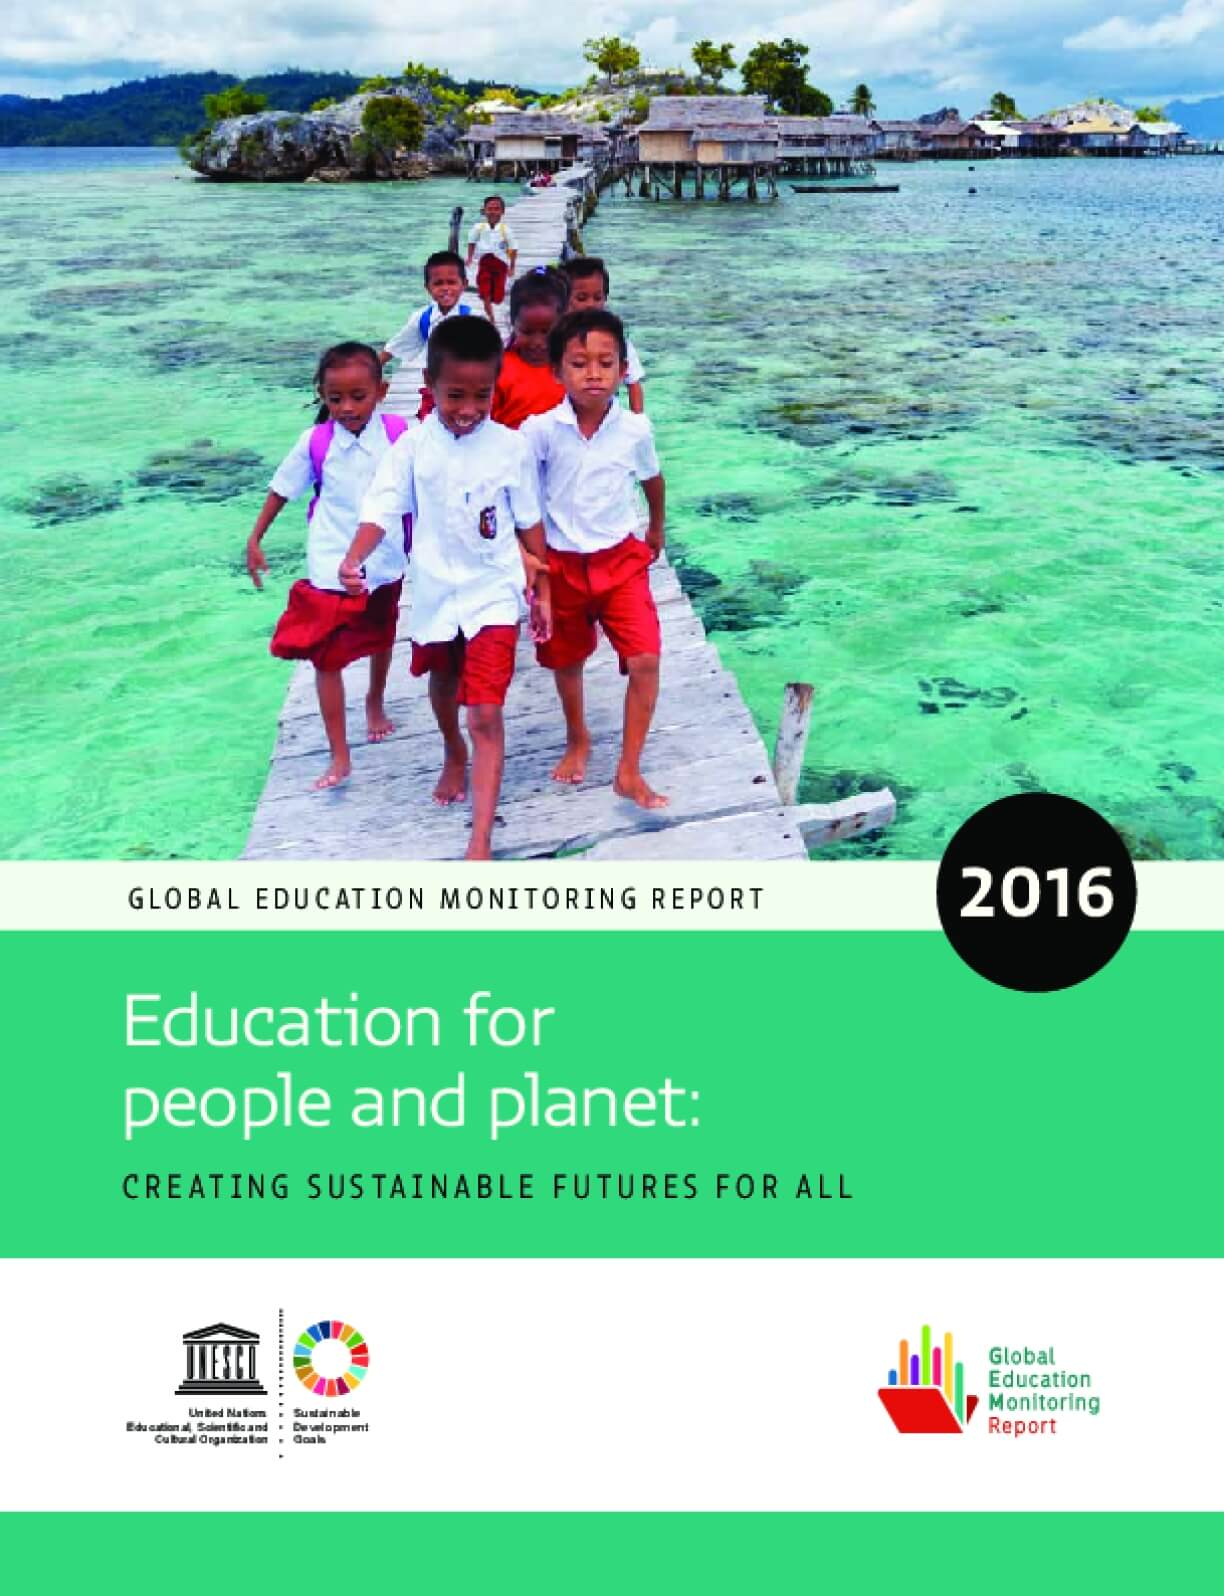 Education for People and Planet: Creating Sustainable Futures for All